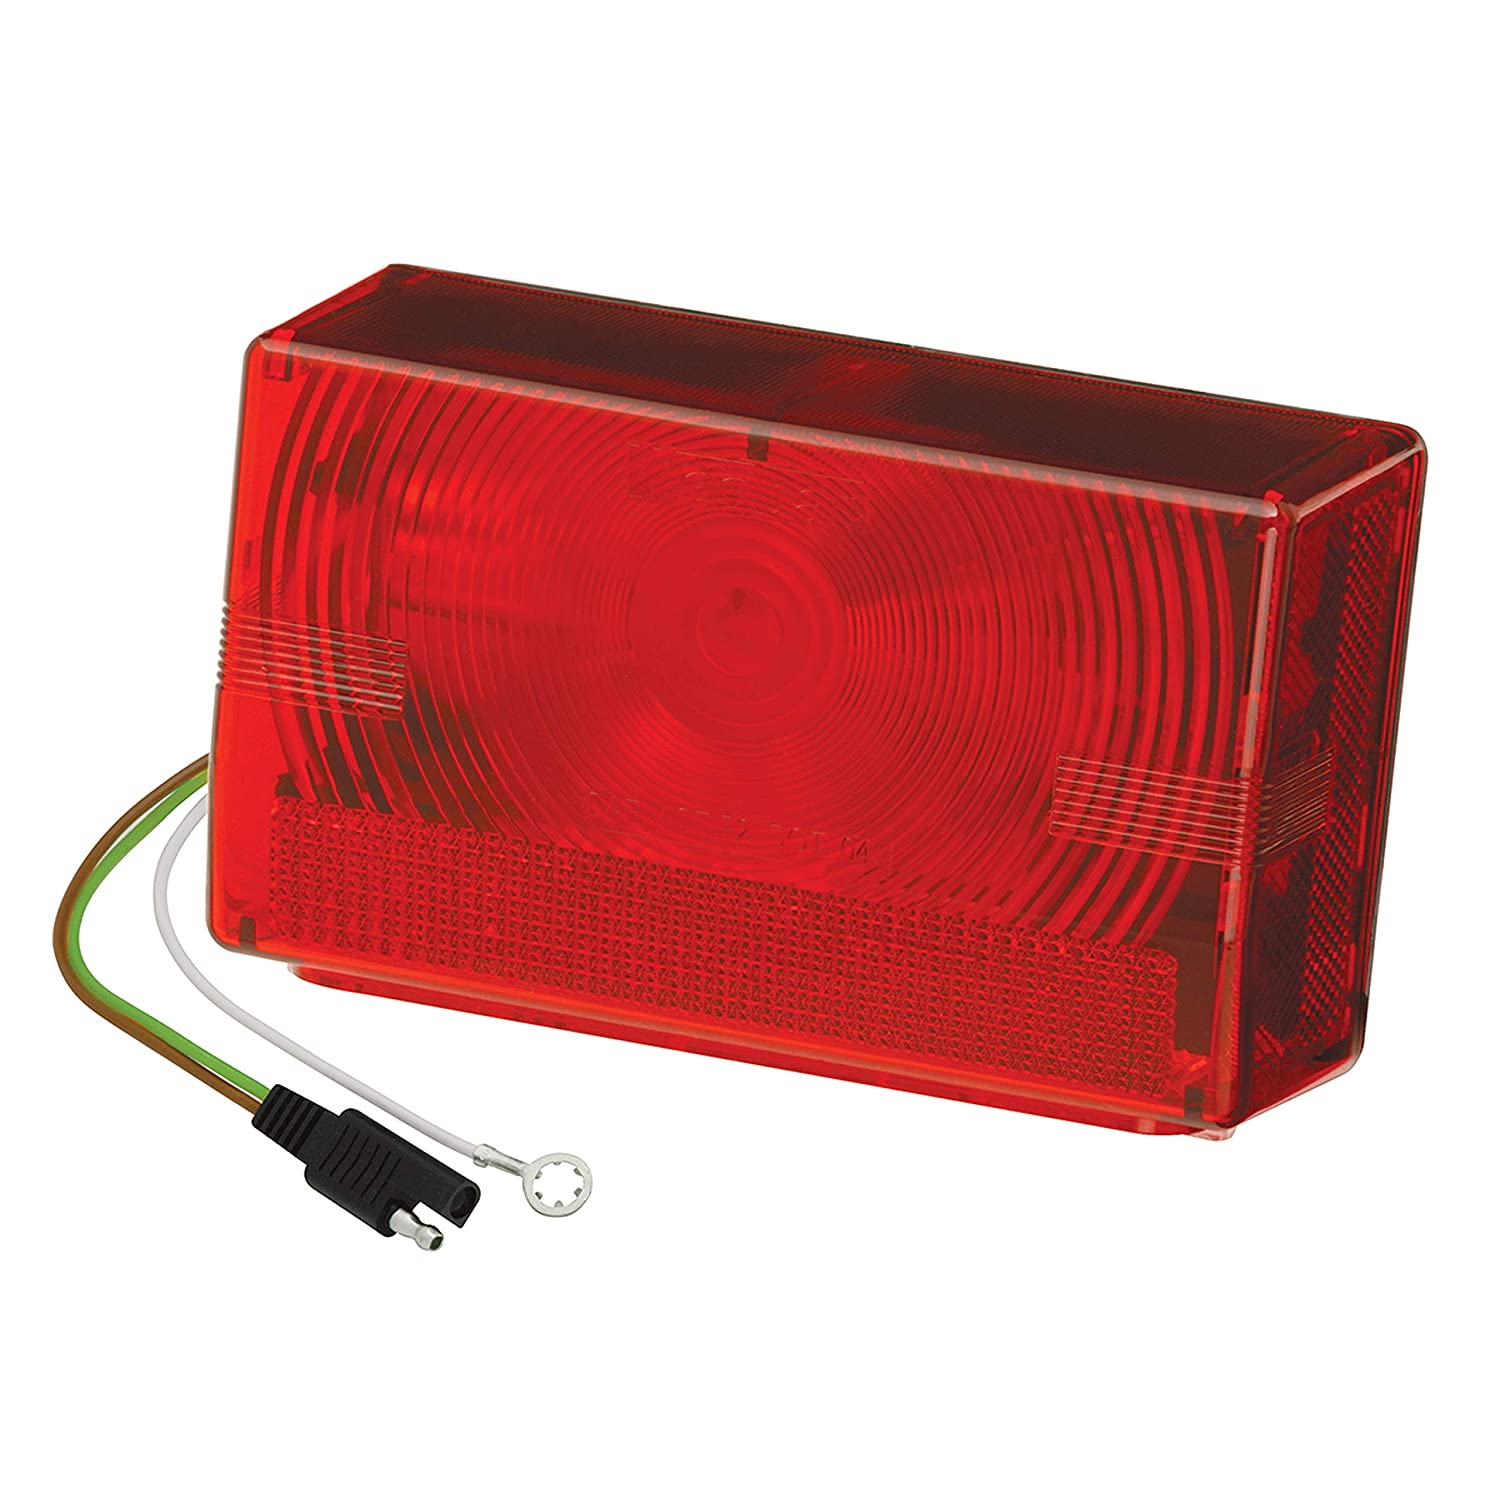 Right//Curbside Over 80 Wide Trailer Black Wesbar 403075 Submersible Tail Light